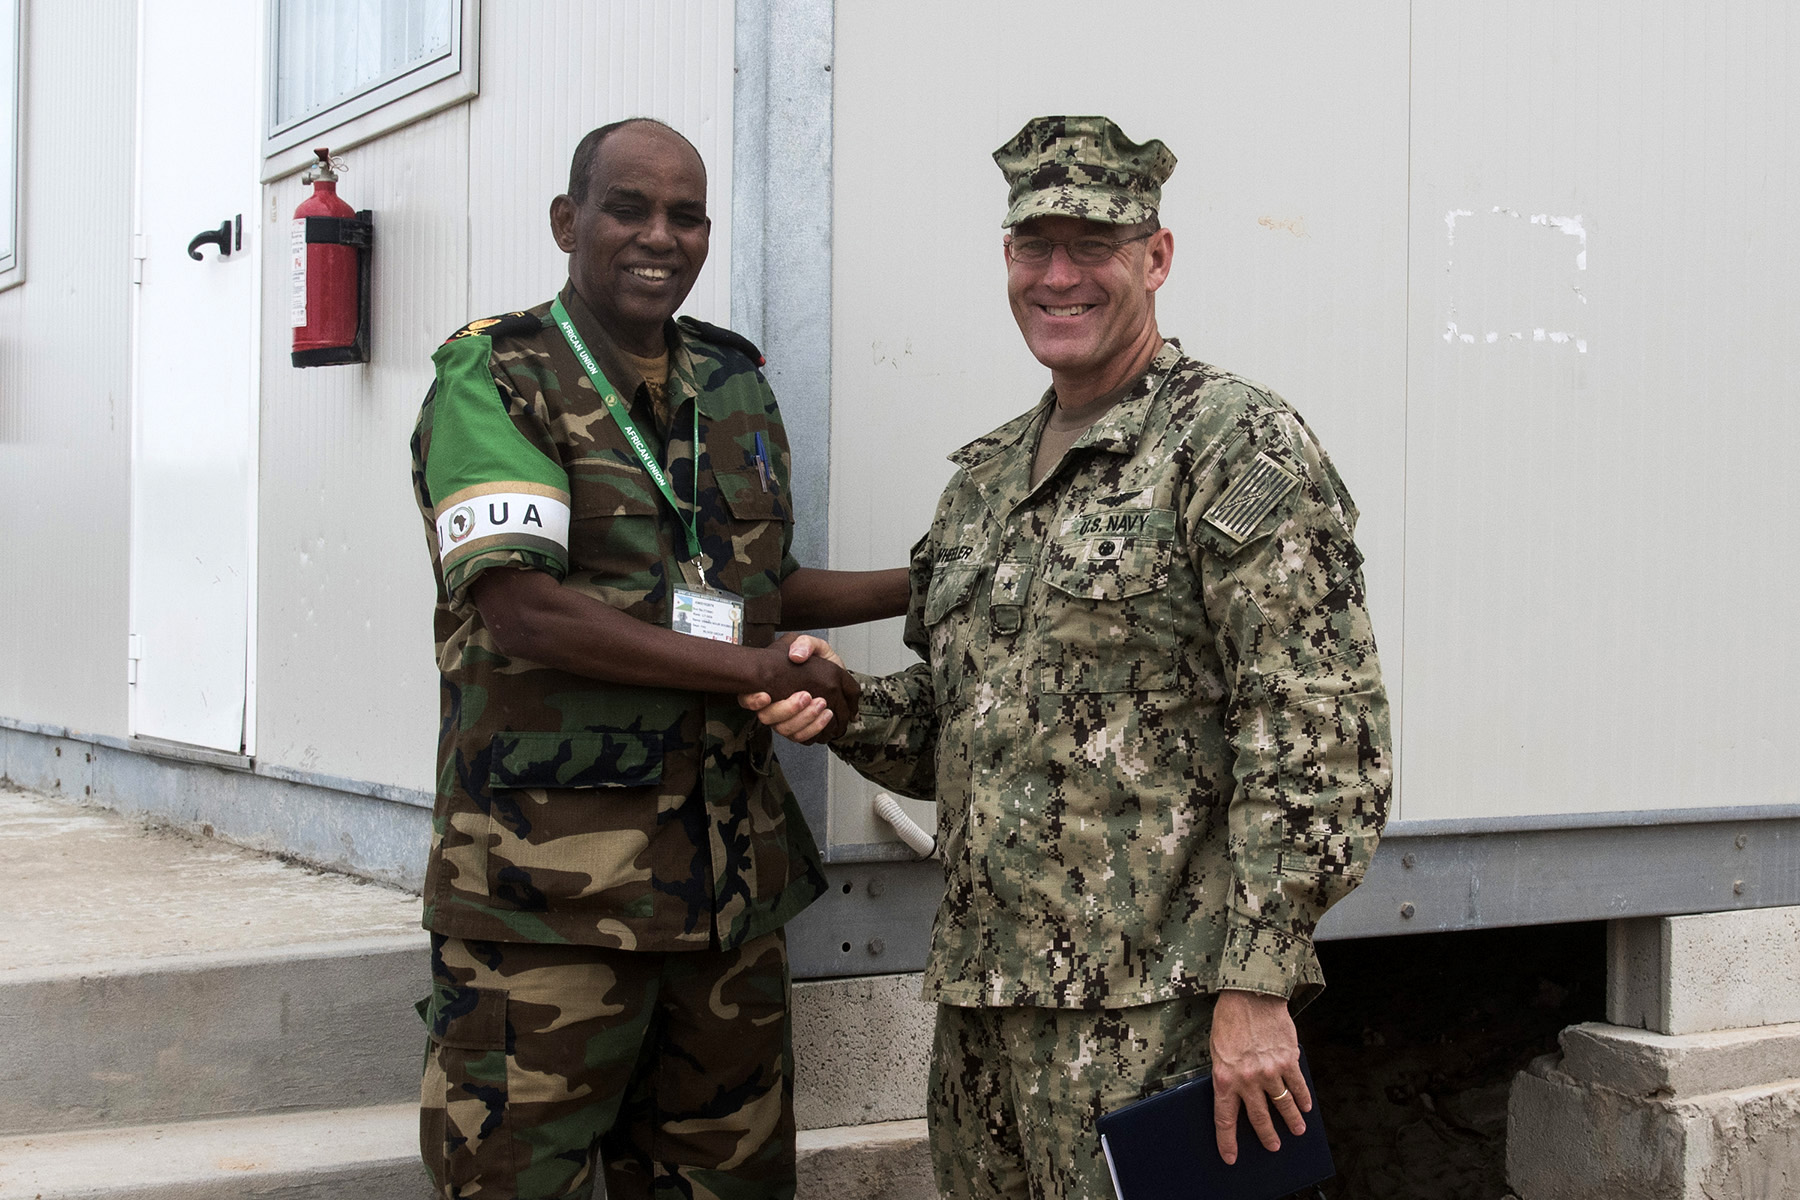 MOGADISHU, Somalia- African Union Mission in Somalia Lt. Gen. Osman Noor Soubagleh, force commander, meets with U.S. Navy Rear Adm. William Wheeler, Combined Joint Task Force-Horn of Africa deputy commander, during an AMISOM/Somali National Army Sector Commanders' conference, Aug. 25, 2016, at the AMISOM Force Headquarters in Mogadishu, Somalia. The Somali sector commanders met to review efficiency and needed improvements for security operations and SNA collaboration strategies. Lt. Gen. Soubagleh is from Djibouti, one of the five AMISOM nations that have combat troops working to secure Somalia.  (U.S. Air Force photo by Staff Sgt. Tiffany DeNault)